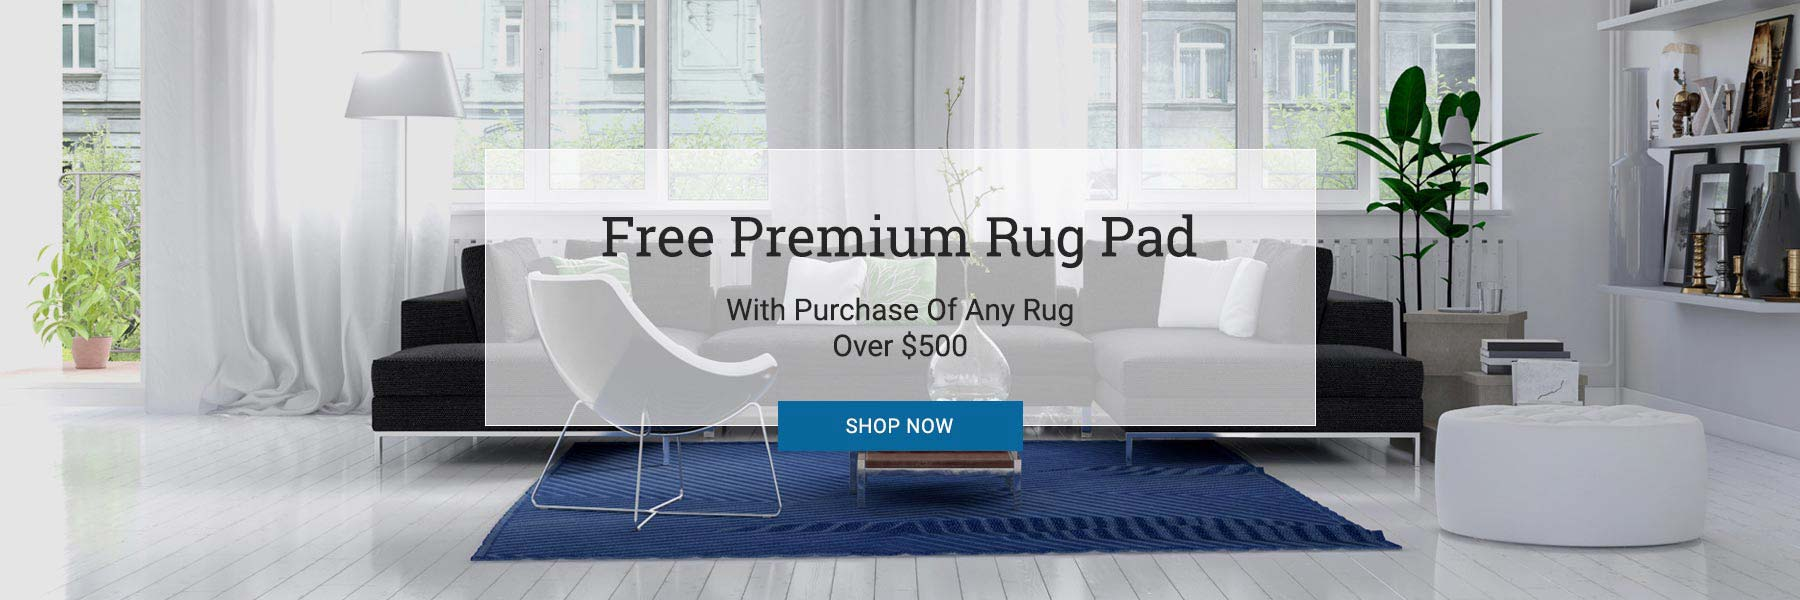 Rug Pads | Rug Padding Services